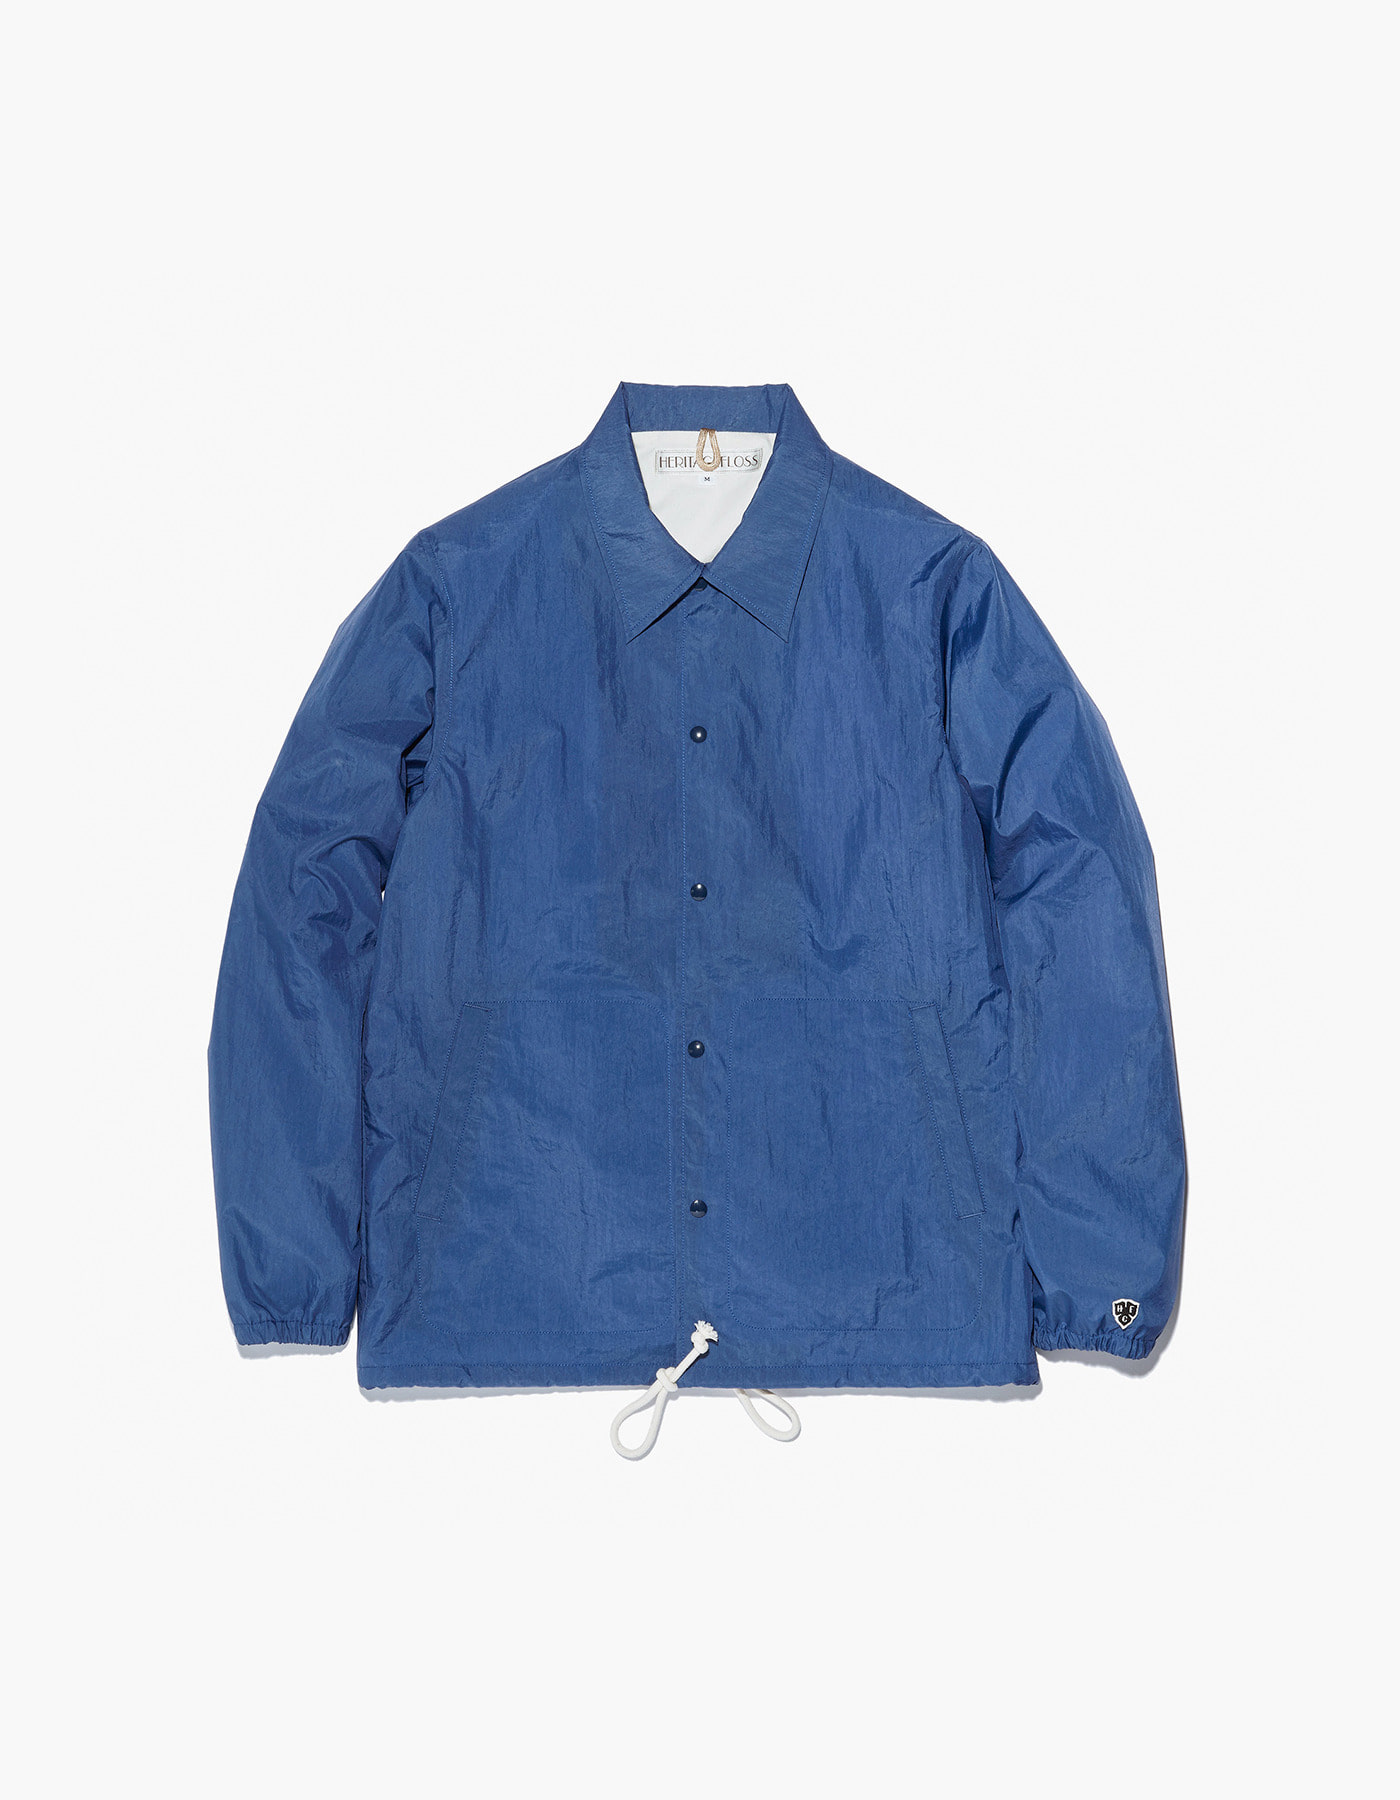 HFC COACH JACKET / BLUE